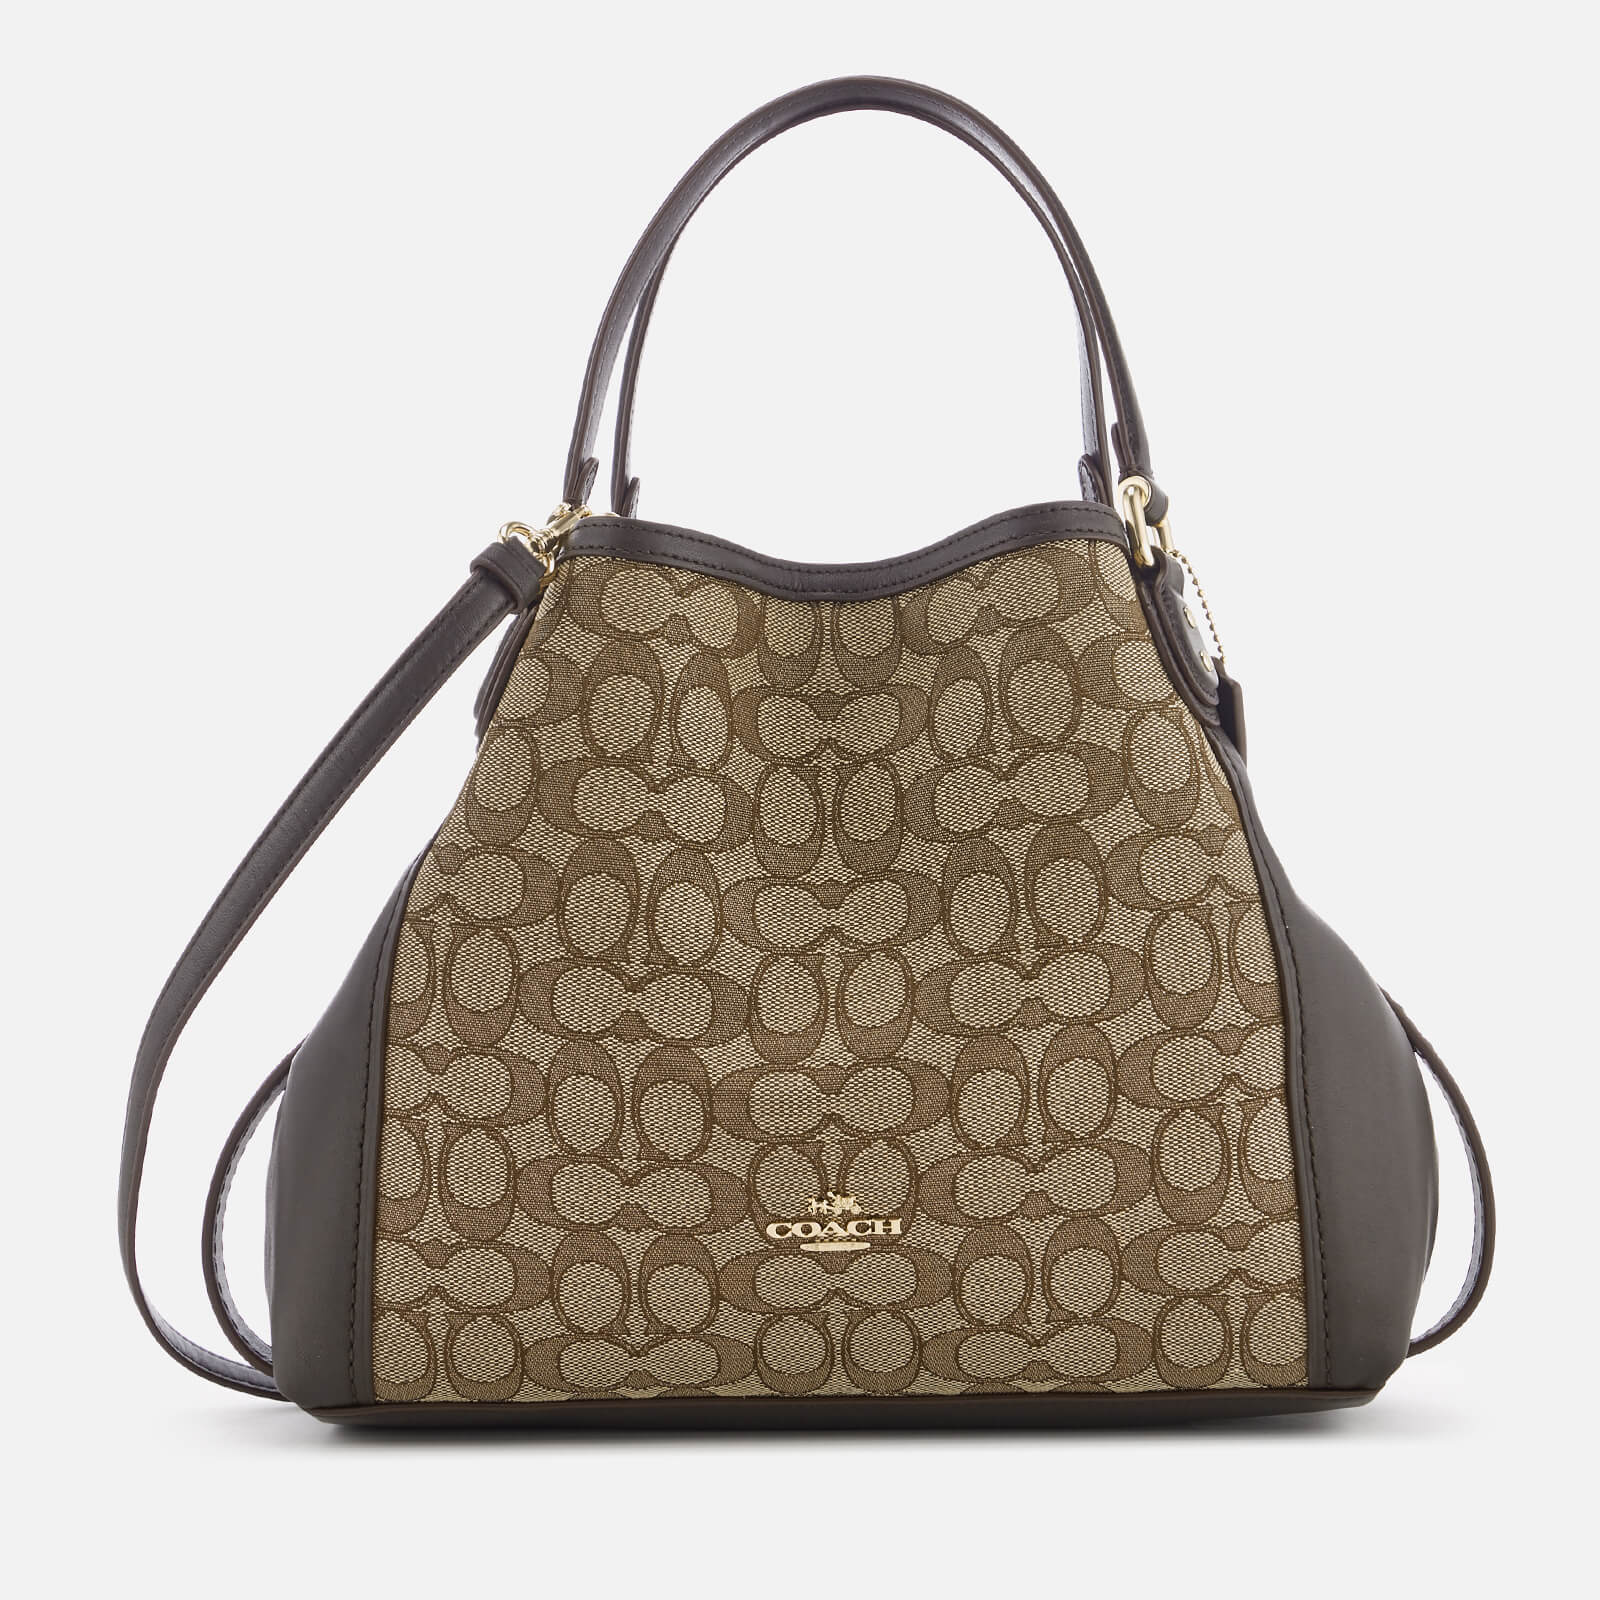 bb54b24f14c6 Coach Women s Edie 28 Shoulder Bag - Khaki Brown - Free UK Delivery over £50